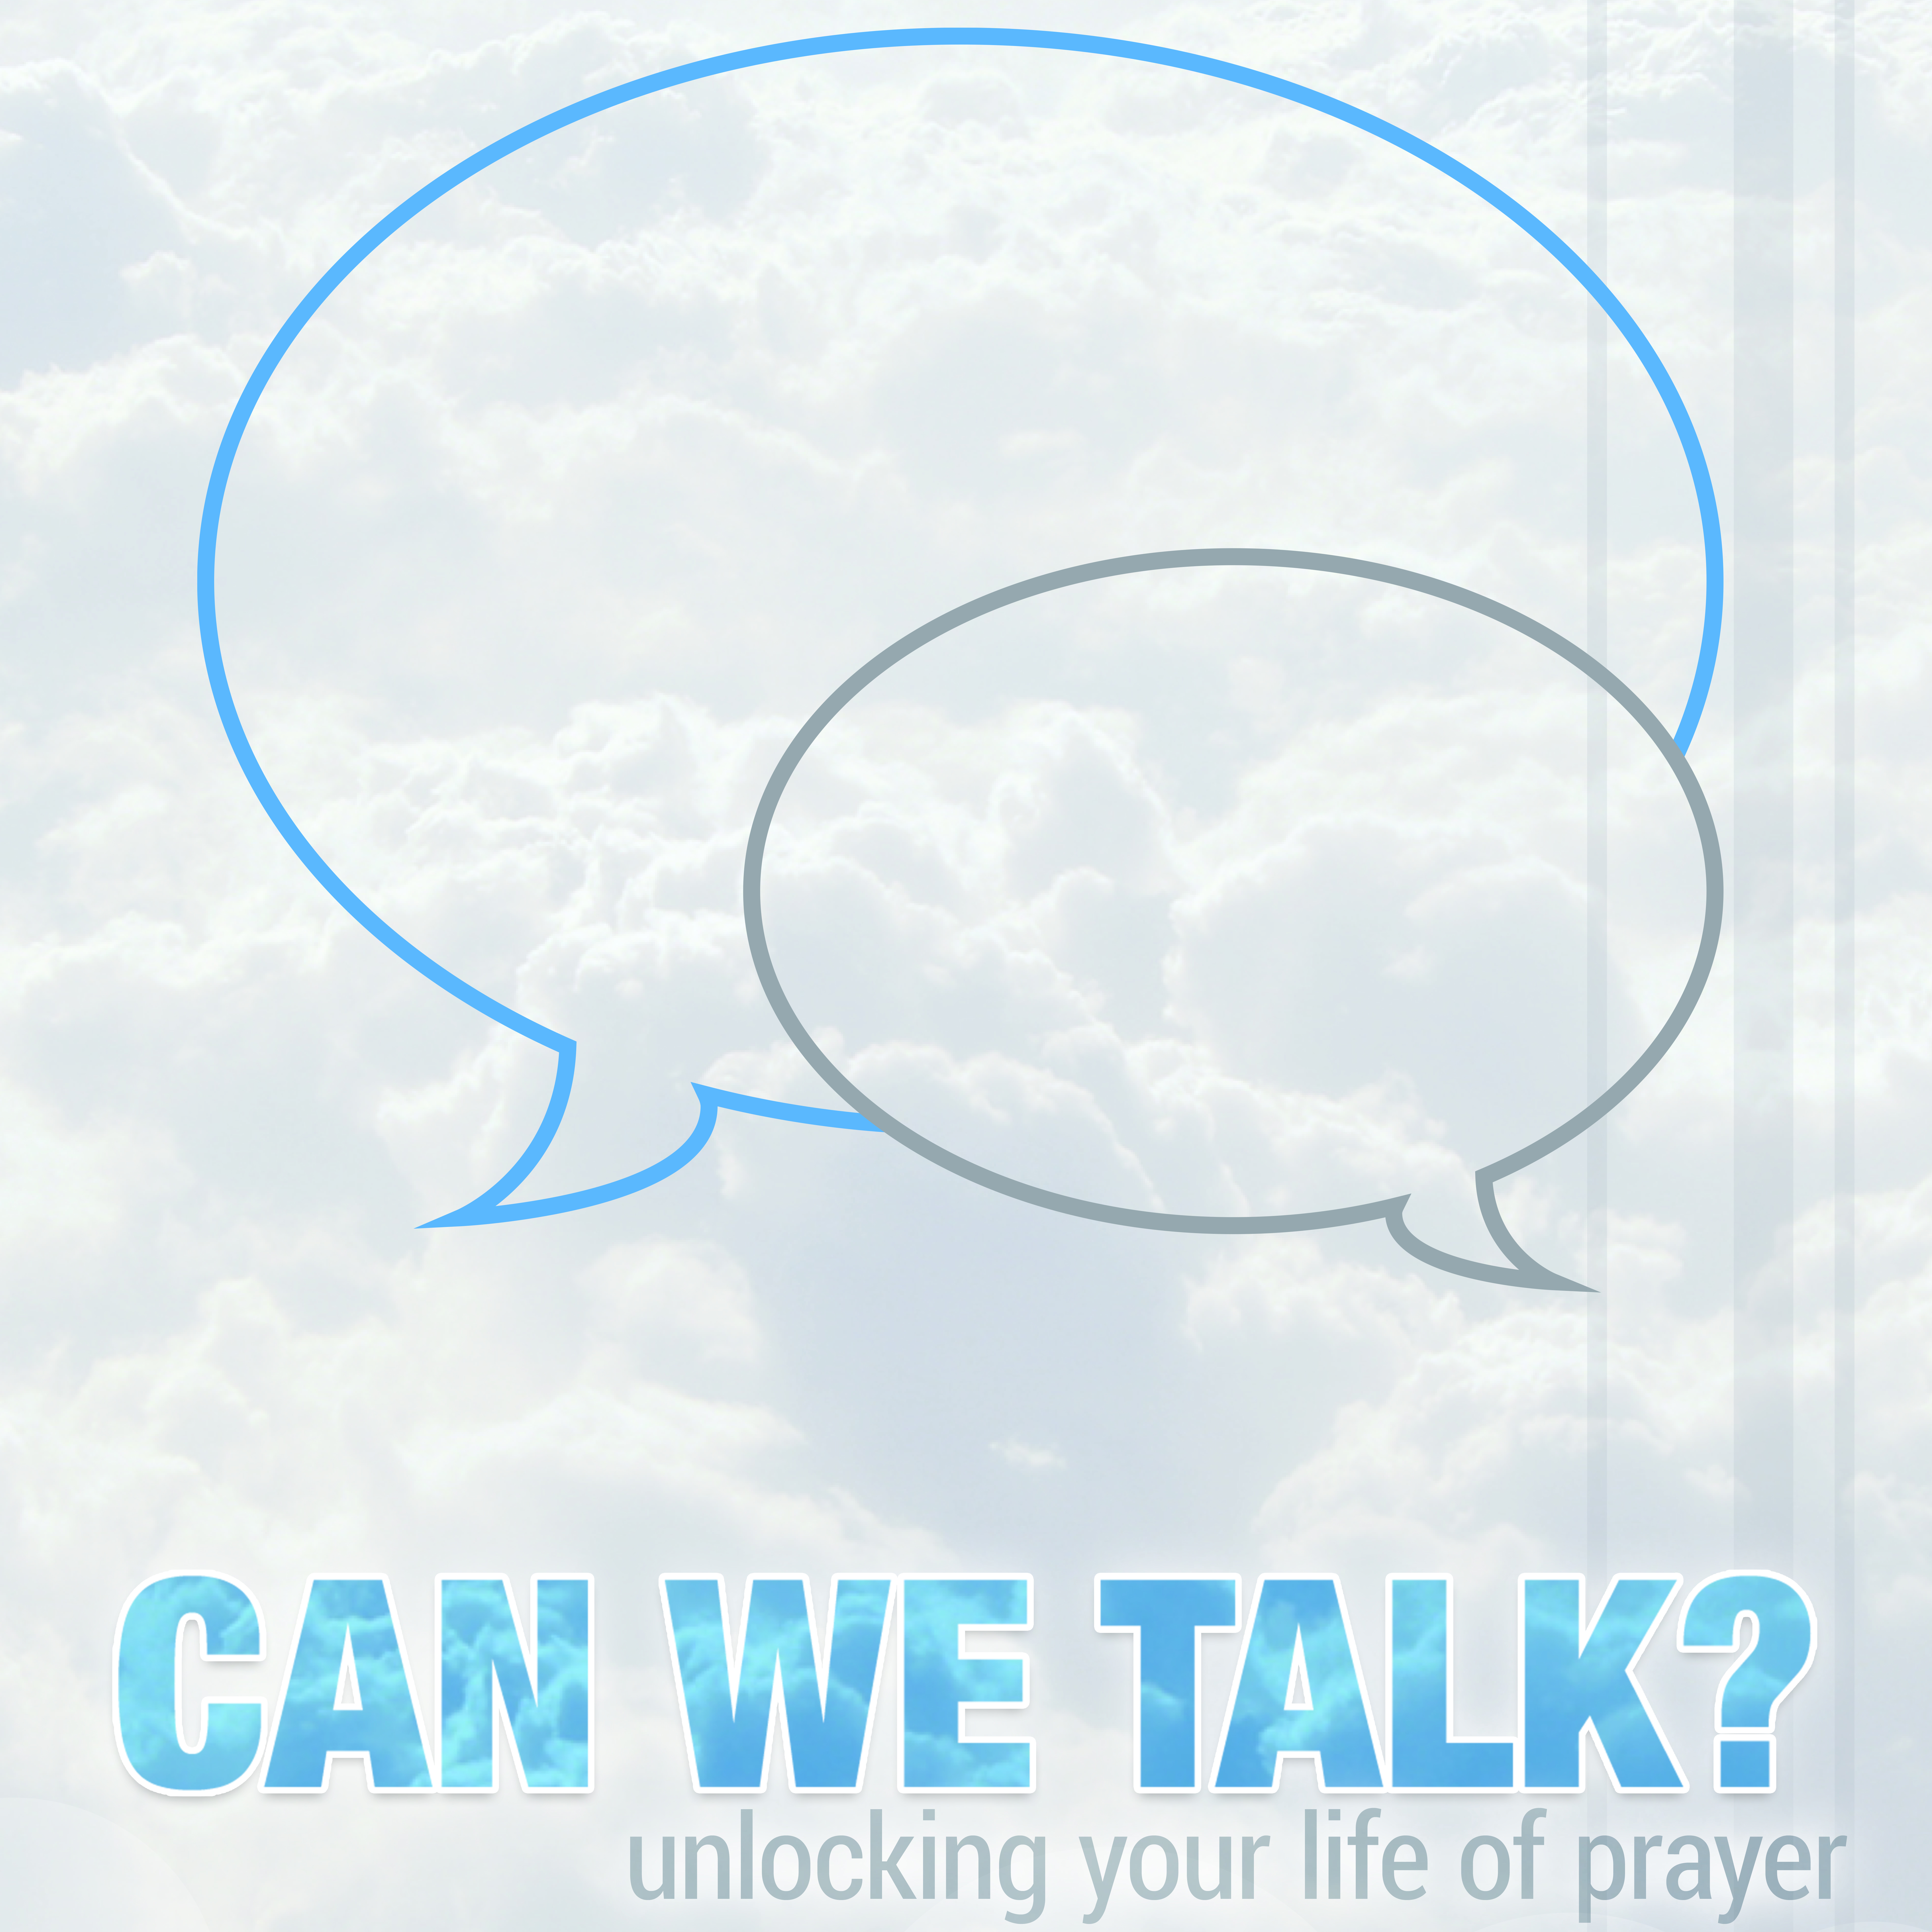 Can We Talk? Unlocking Your Life of Prayer